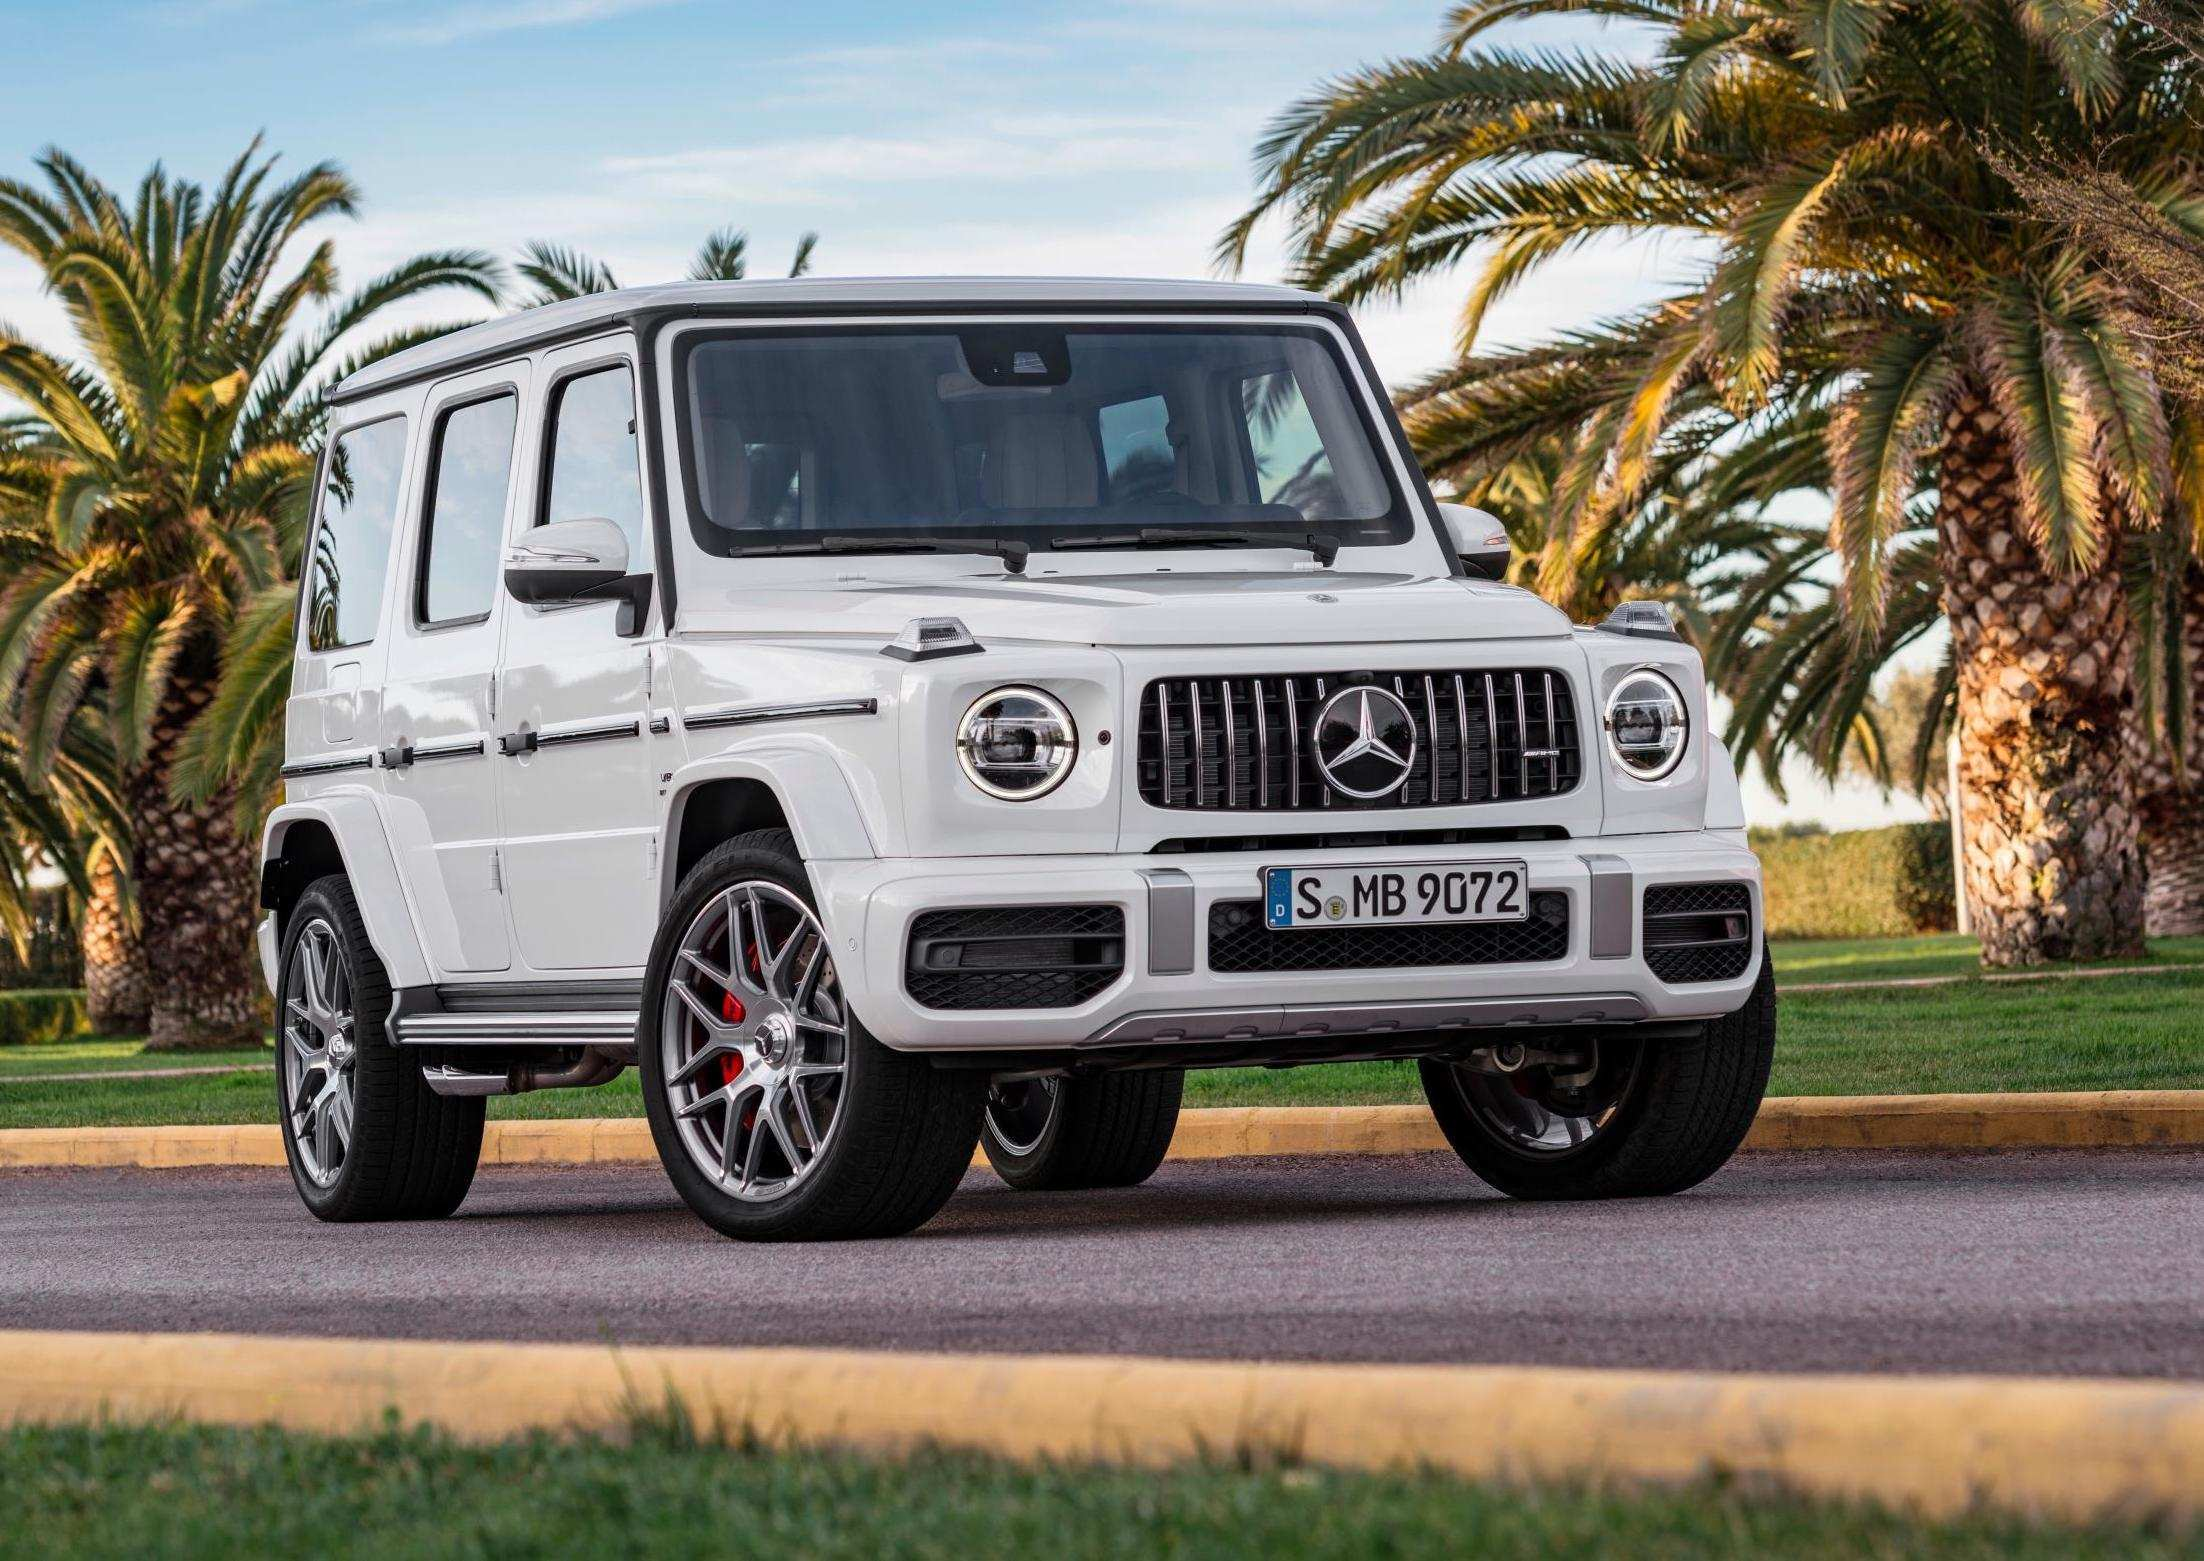 42 New 2019 Mercedes G Wagon For Sale Price Performance with 2019 Mercedes G Wagon For Sale Price